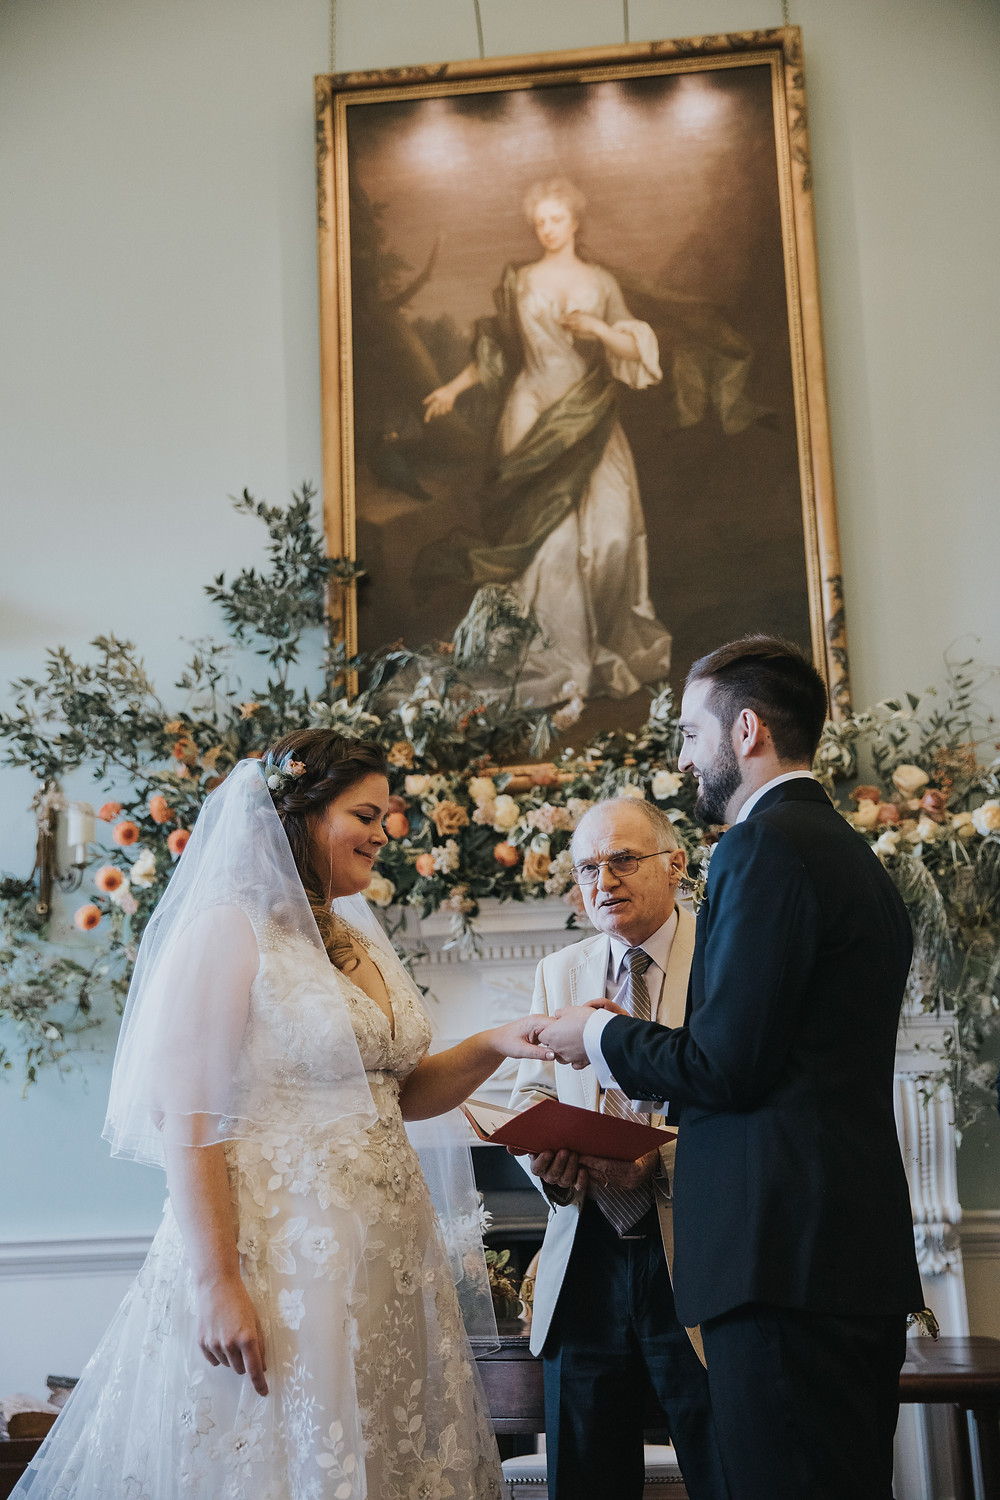 Kirtlington Park Wedding Photography - Poppy Carter Portraits - Elegant Oxford Wedding